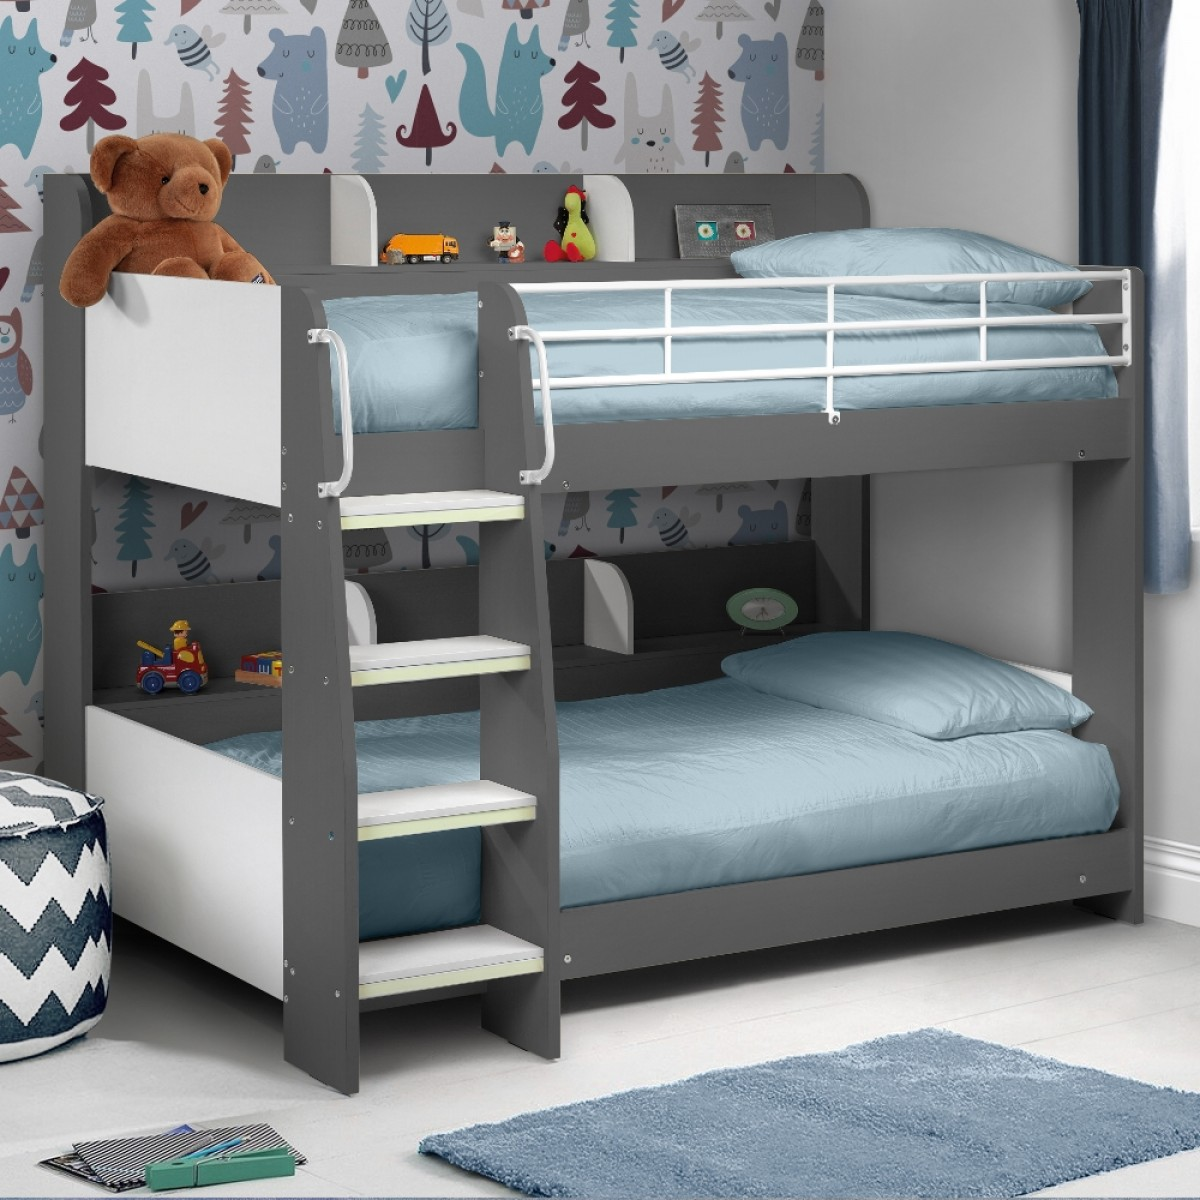 Different Bunk Bed Ideas to Explore